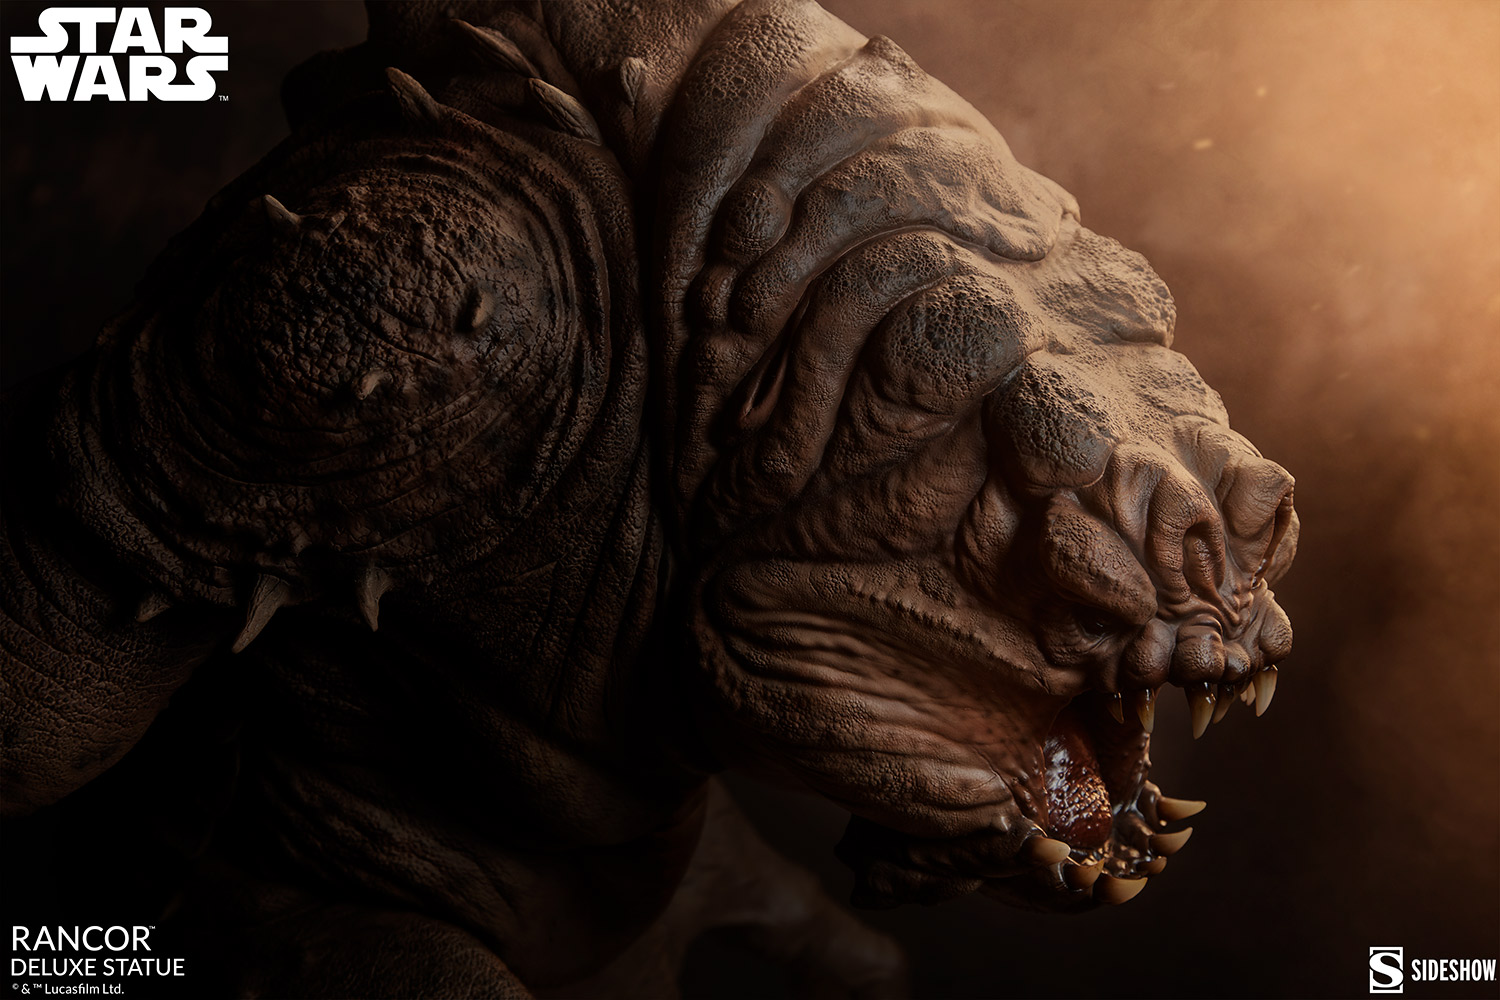 Link a Rancor-Deluxe-Statue-Star-Wars-collectibles-Theater-6